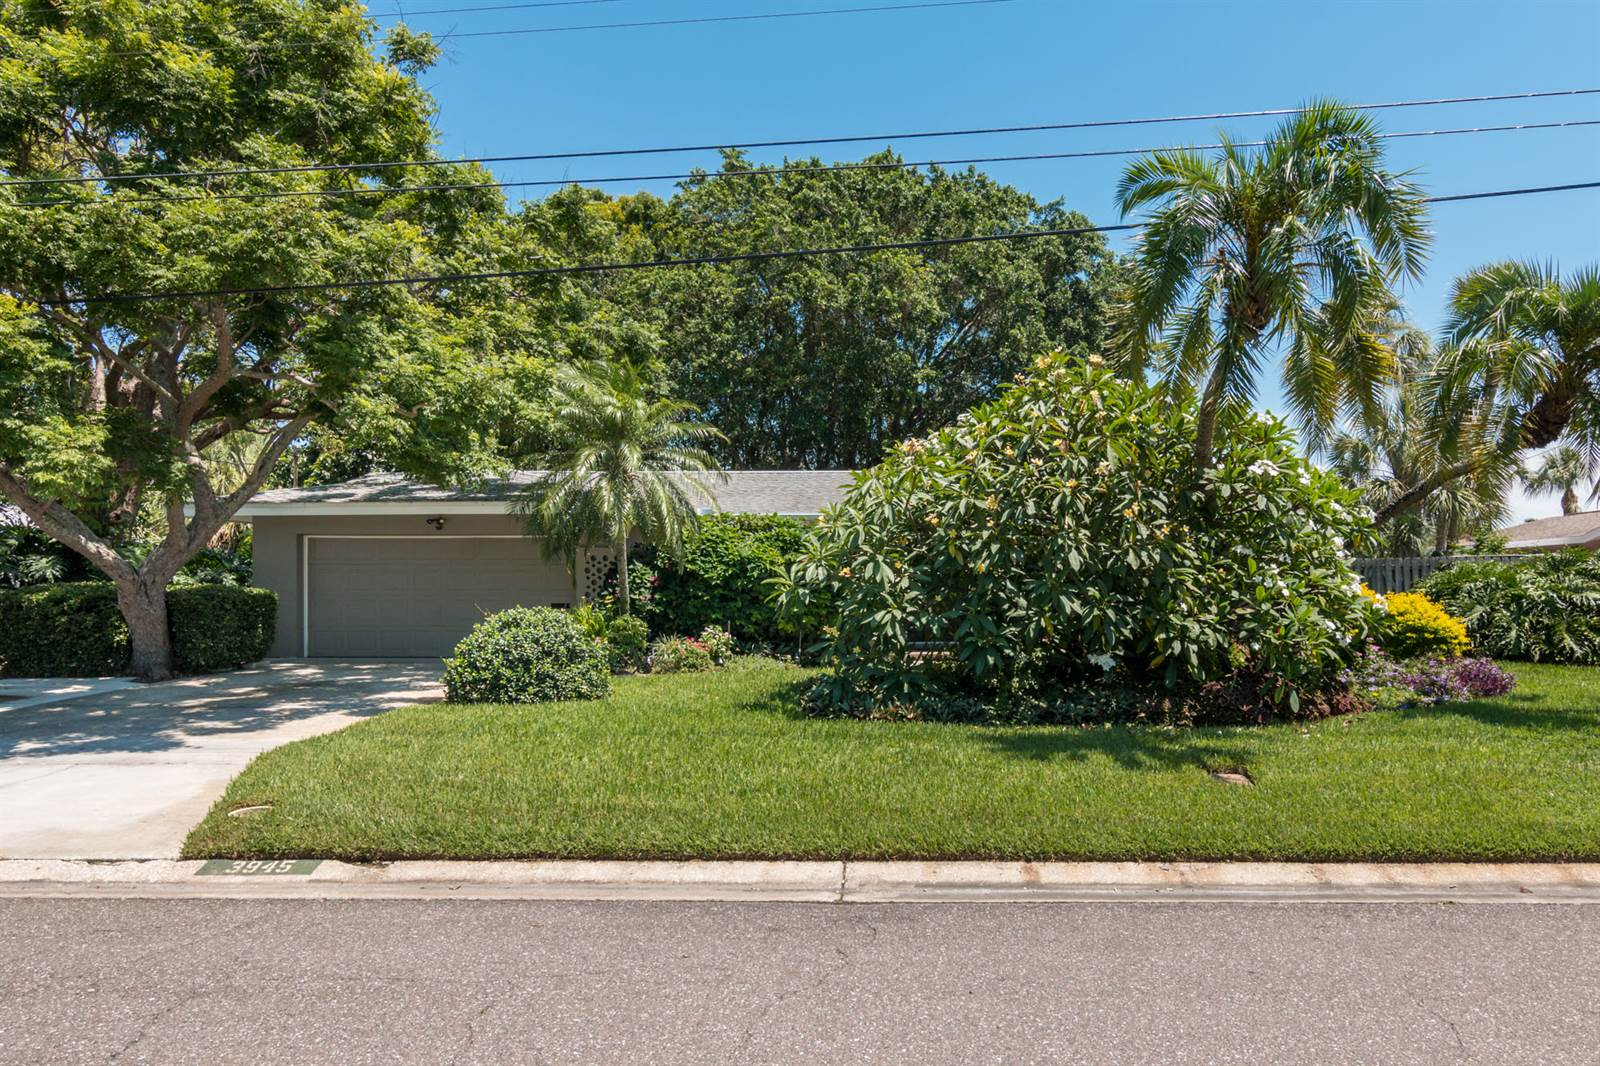 3945 49th Ave S, St Petersburg, FL 33711